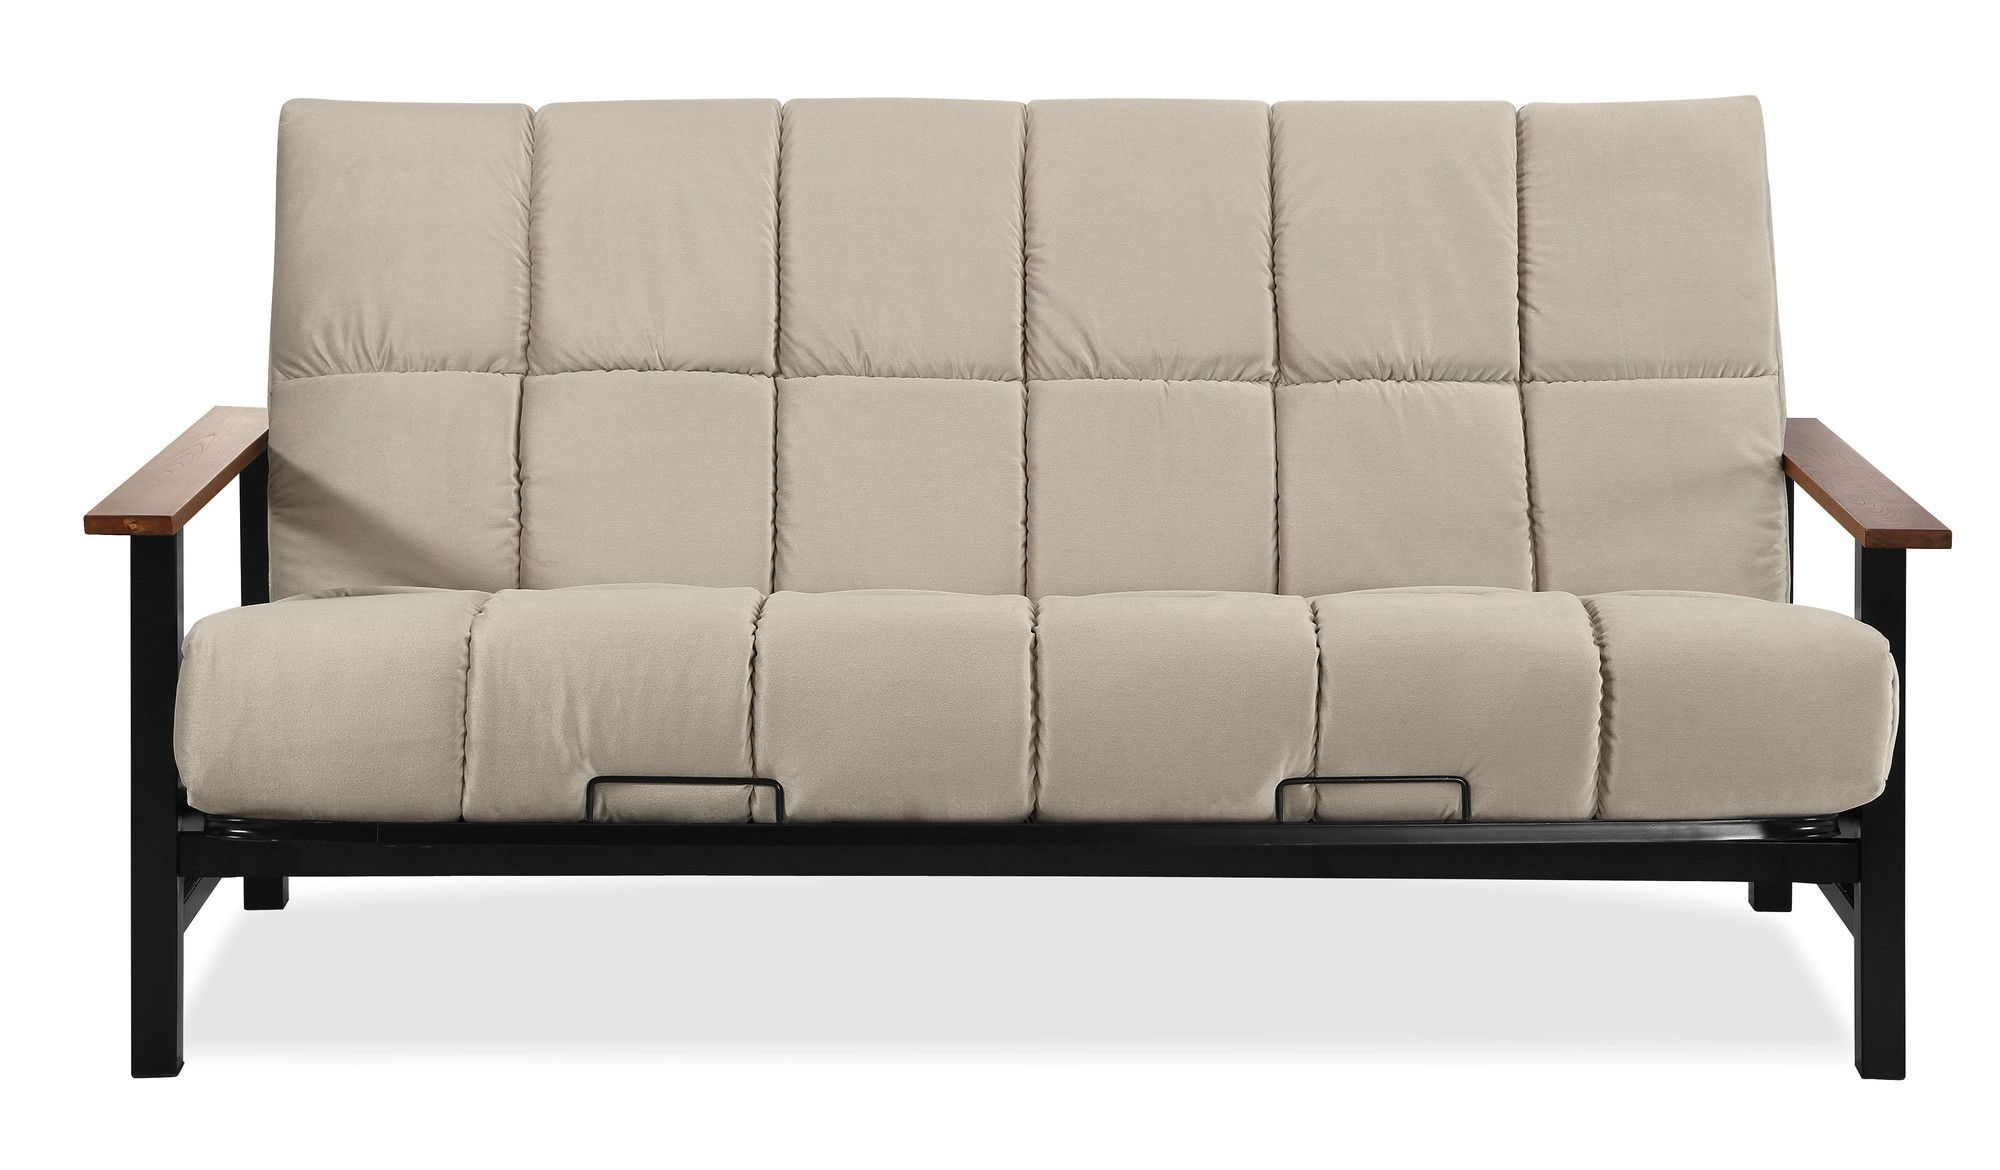 Simmons Futons Phoenix Futon And Mattress Color Biscuit